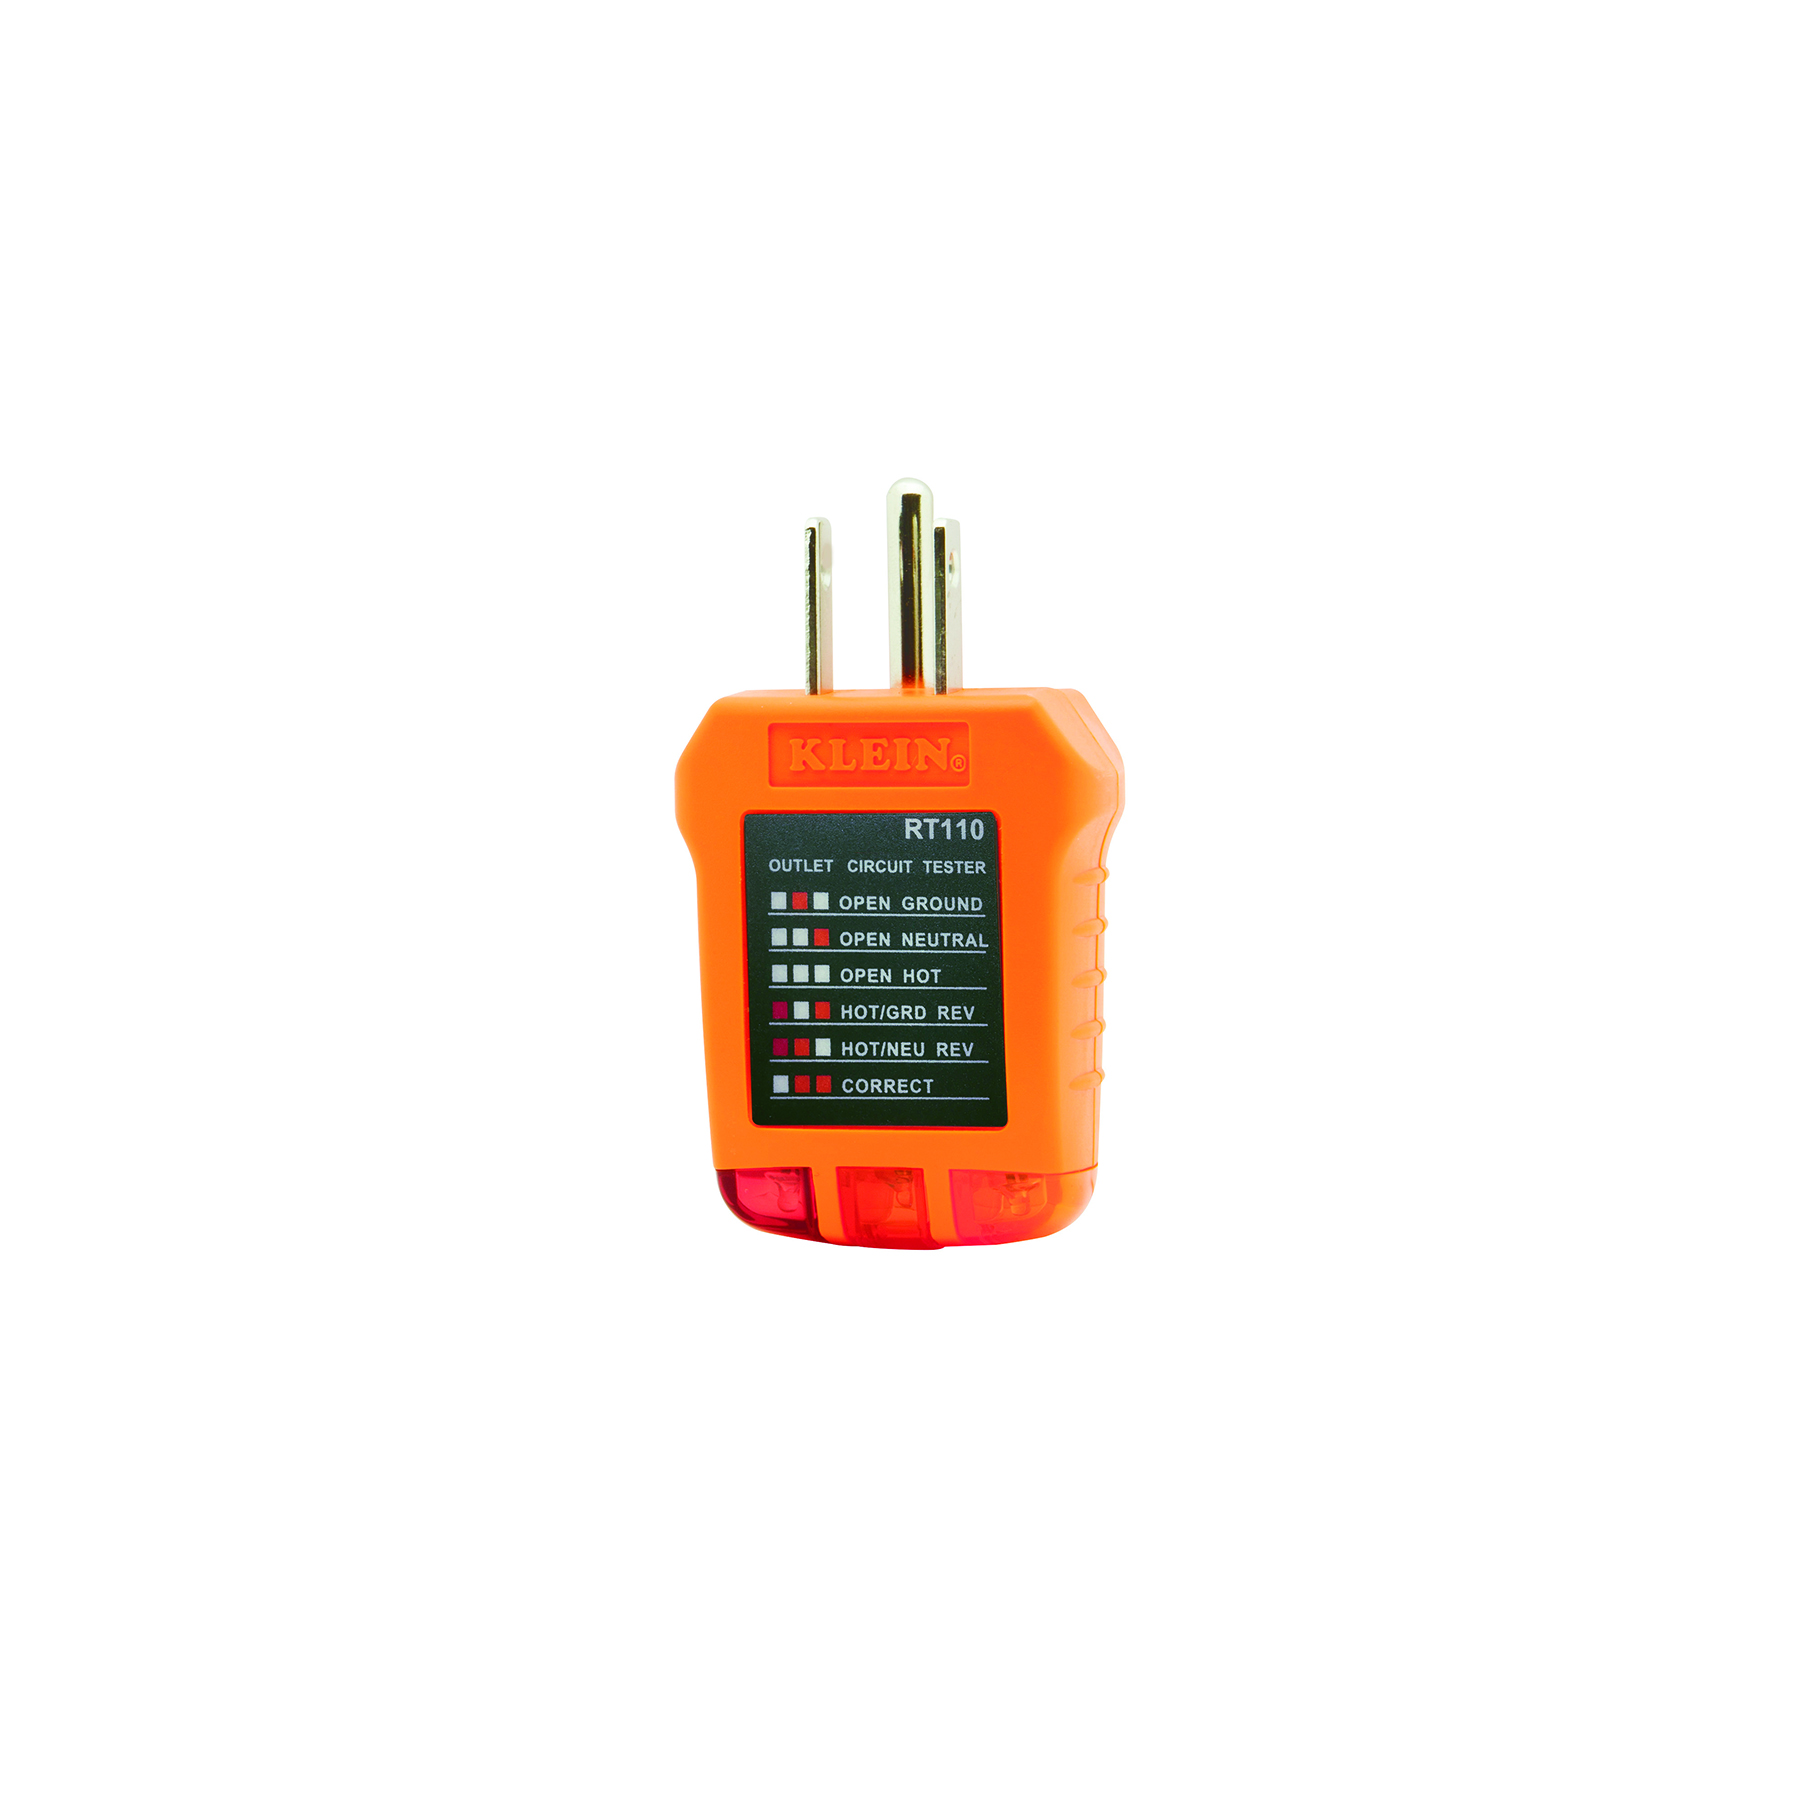 Receptacle Tester Rt110 Klein Tools For Professionals Since 1857 Wiring Neutral Hot Ground Images